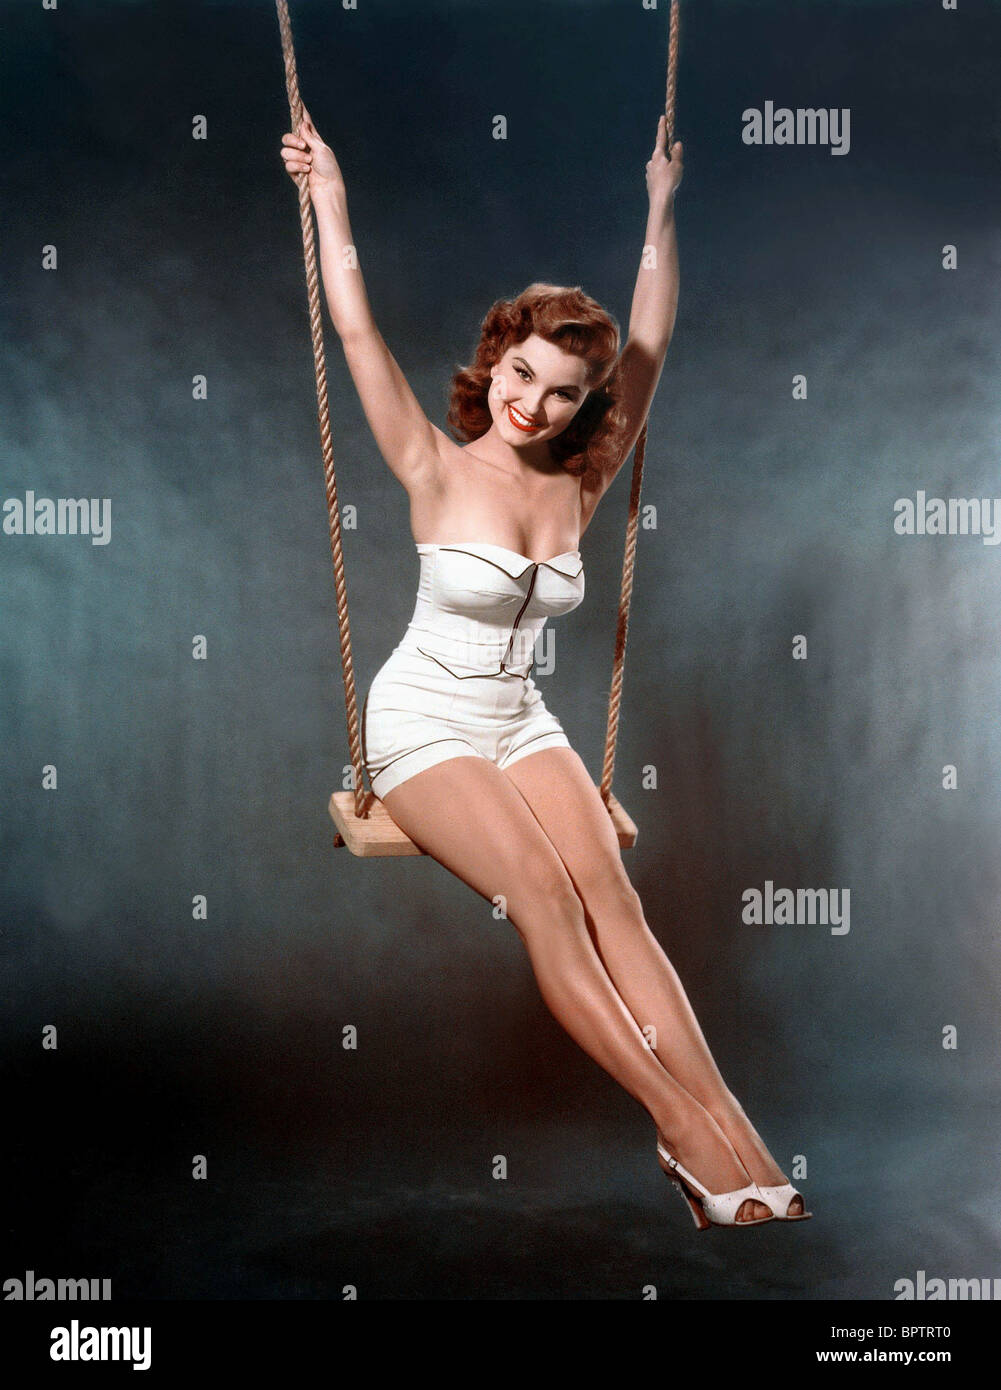 debra paget latest photos